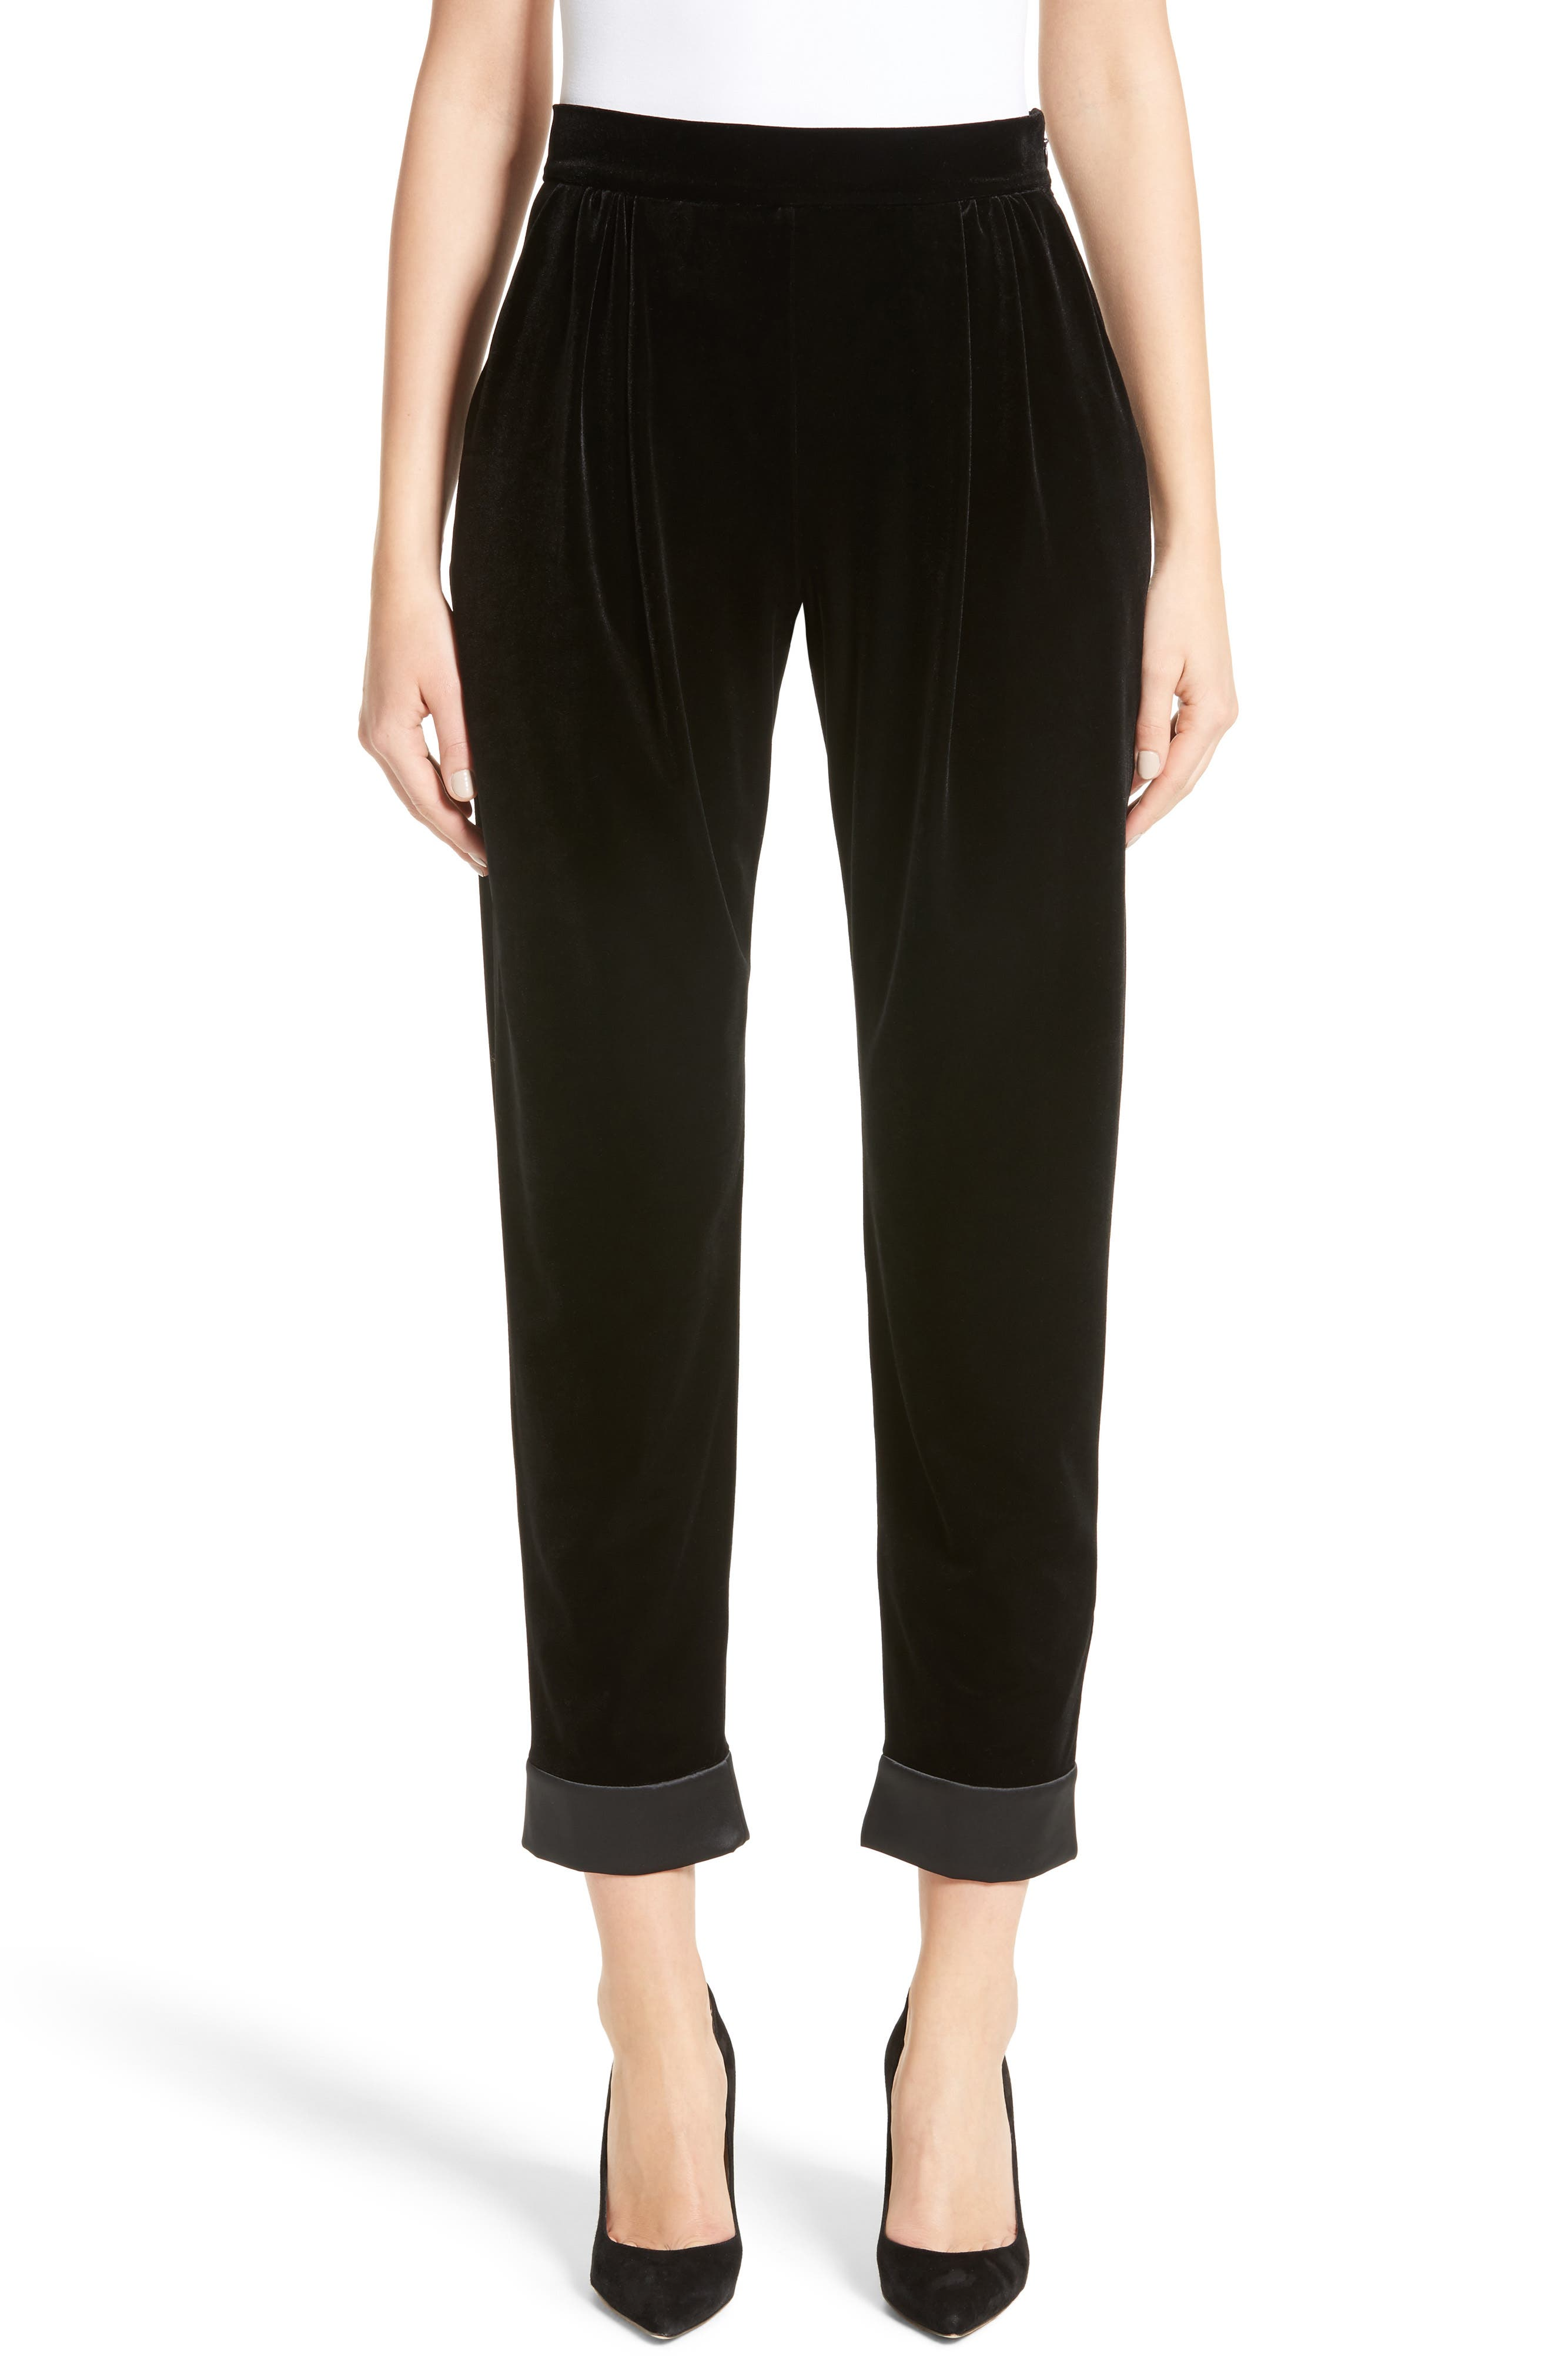 Alternate Image 1 Selected - Armani Collezioni Stretch Velvet Ankle Pants